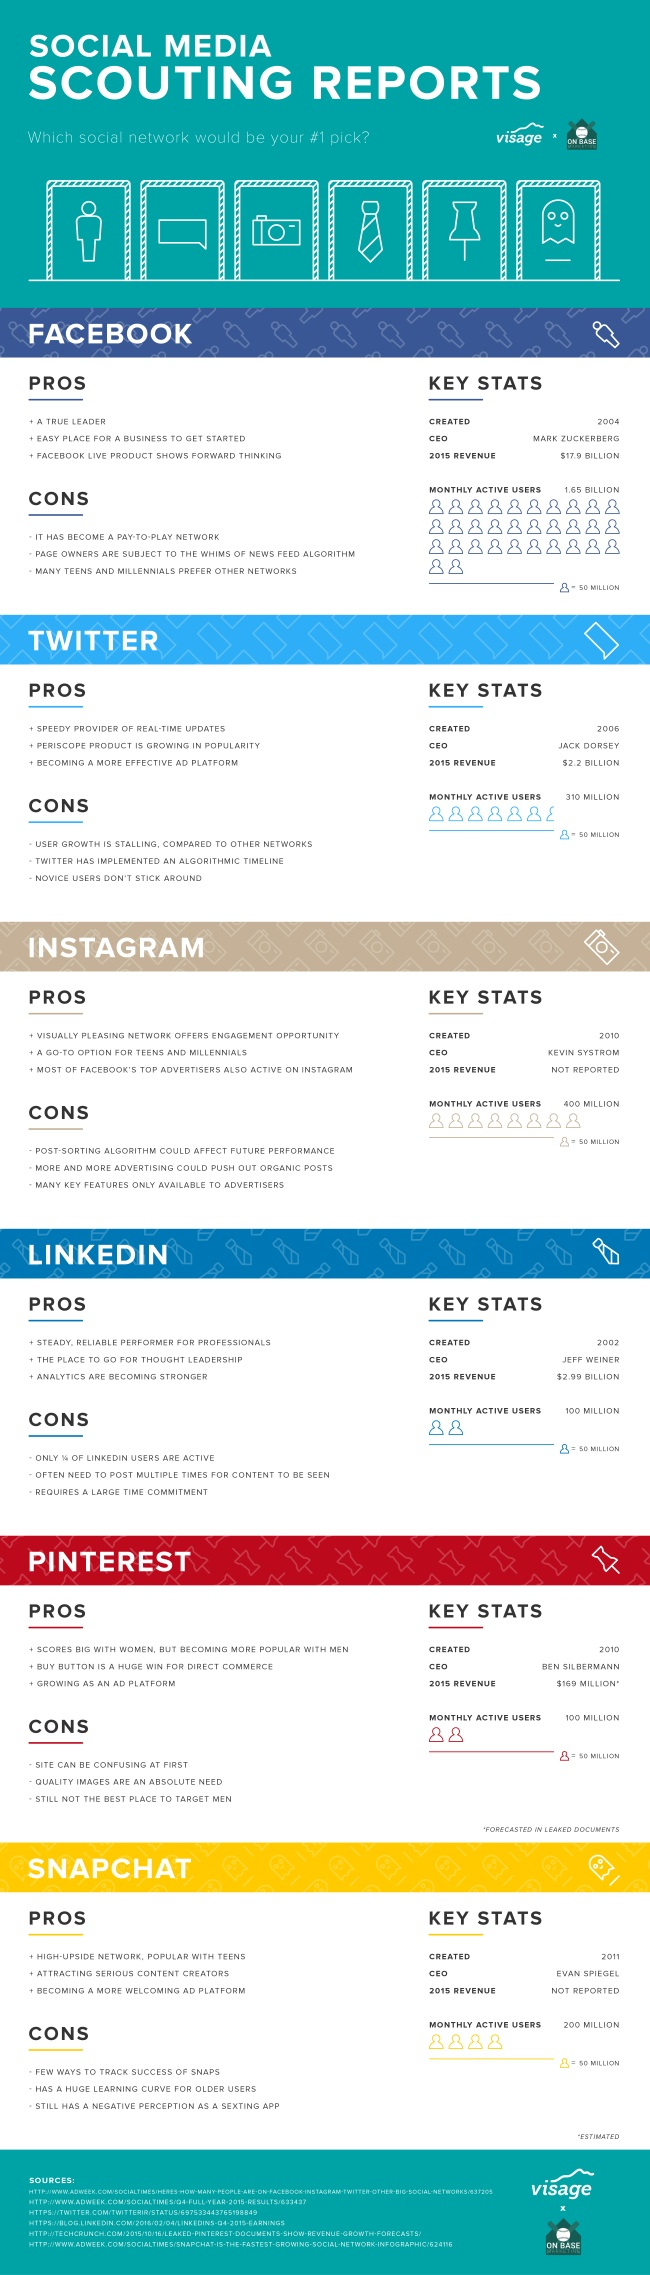 pros-cons-social-networks-infographic.jpg